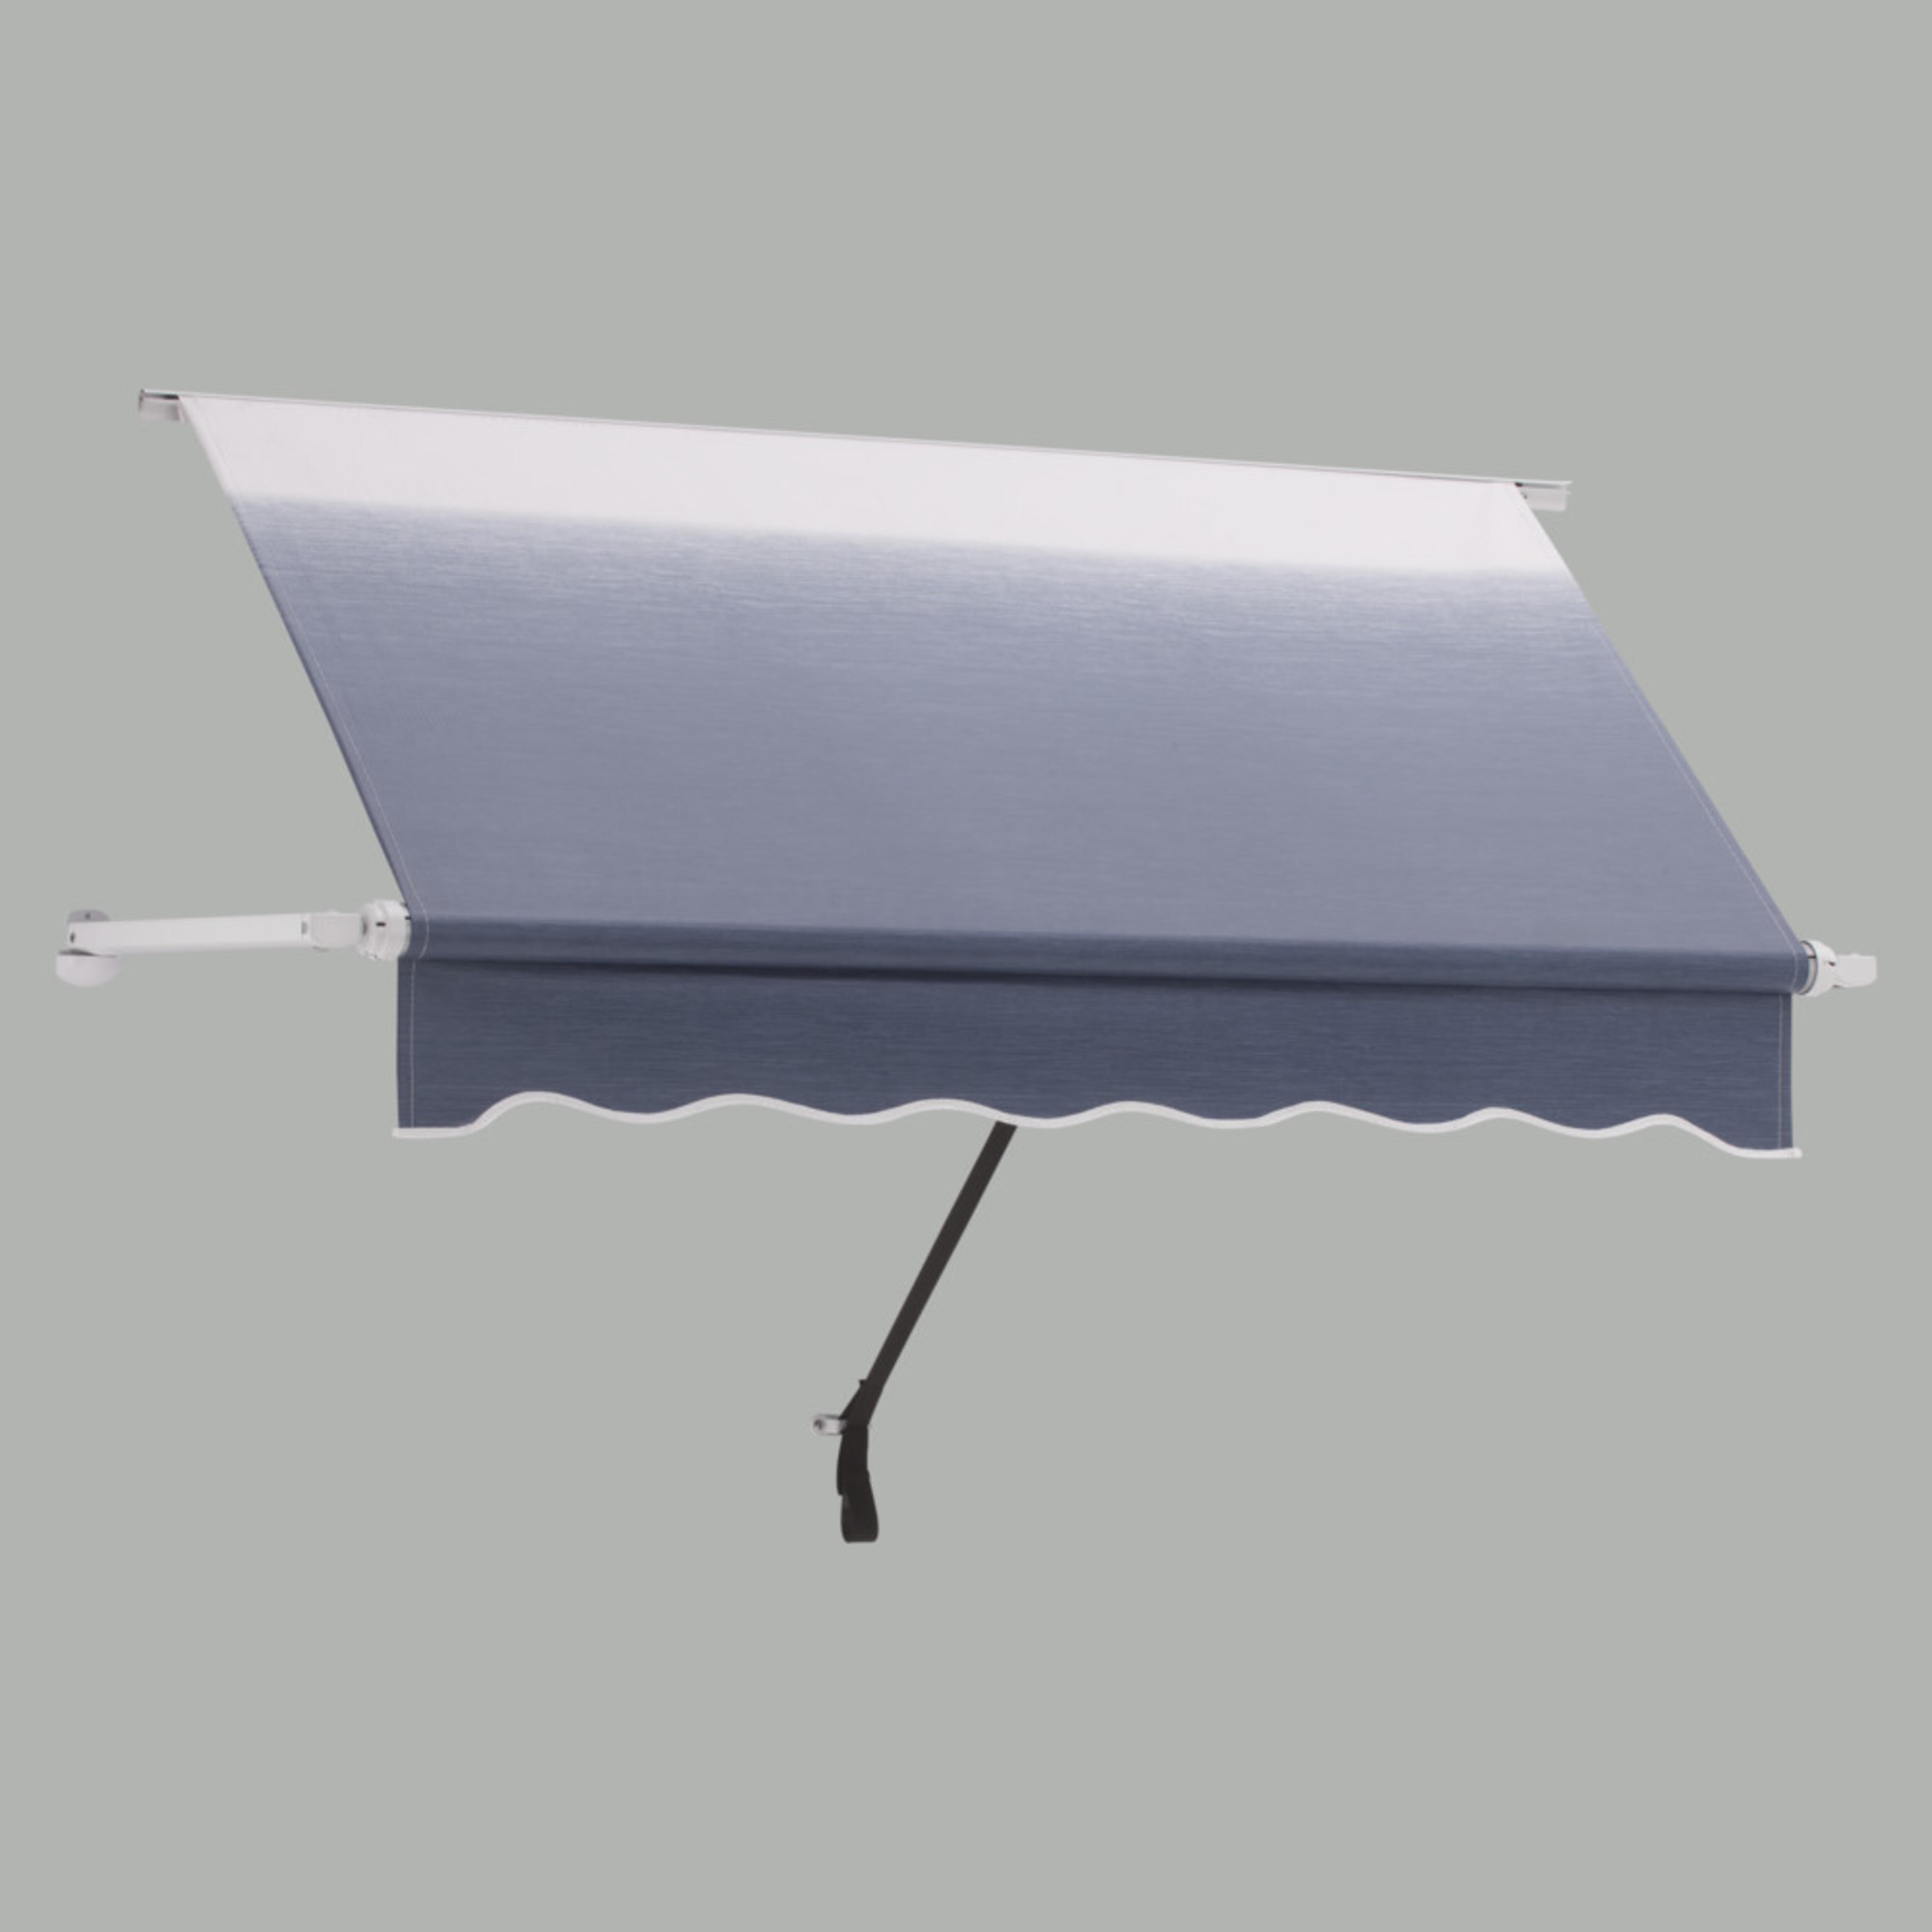 Dometic Deluxe Plus Window Awning